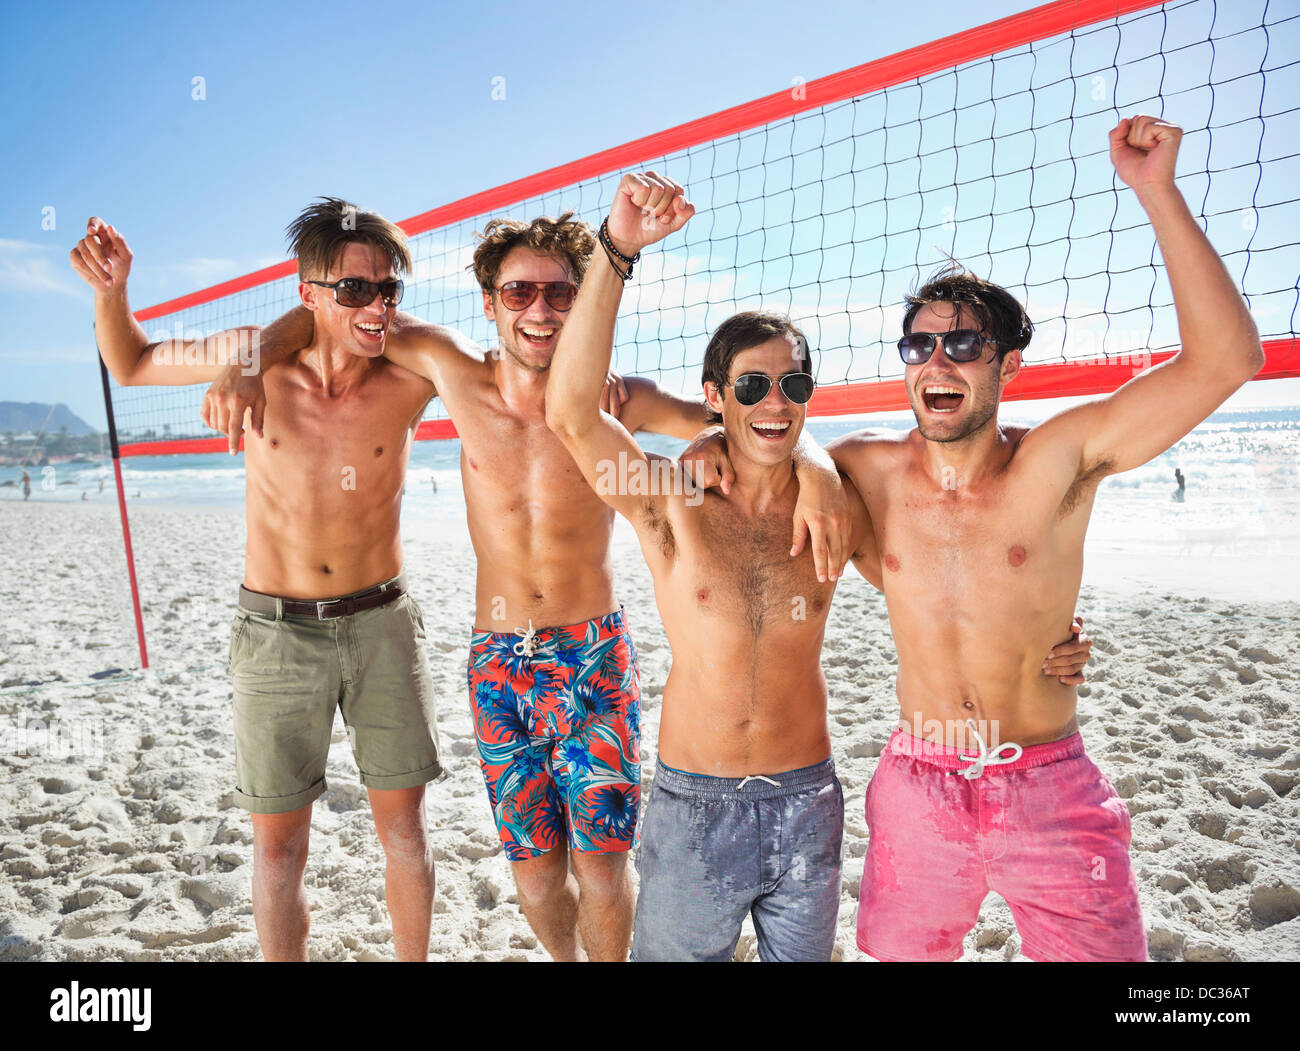 Portrait of enthusiastic friends on beach volleyball court - Stock Image